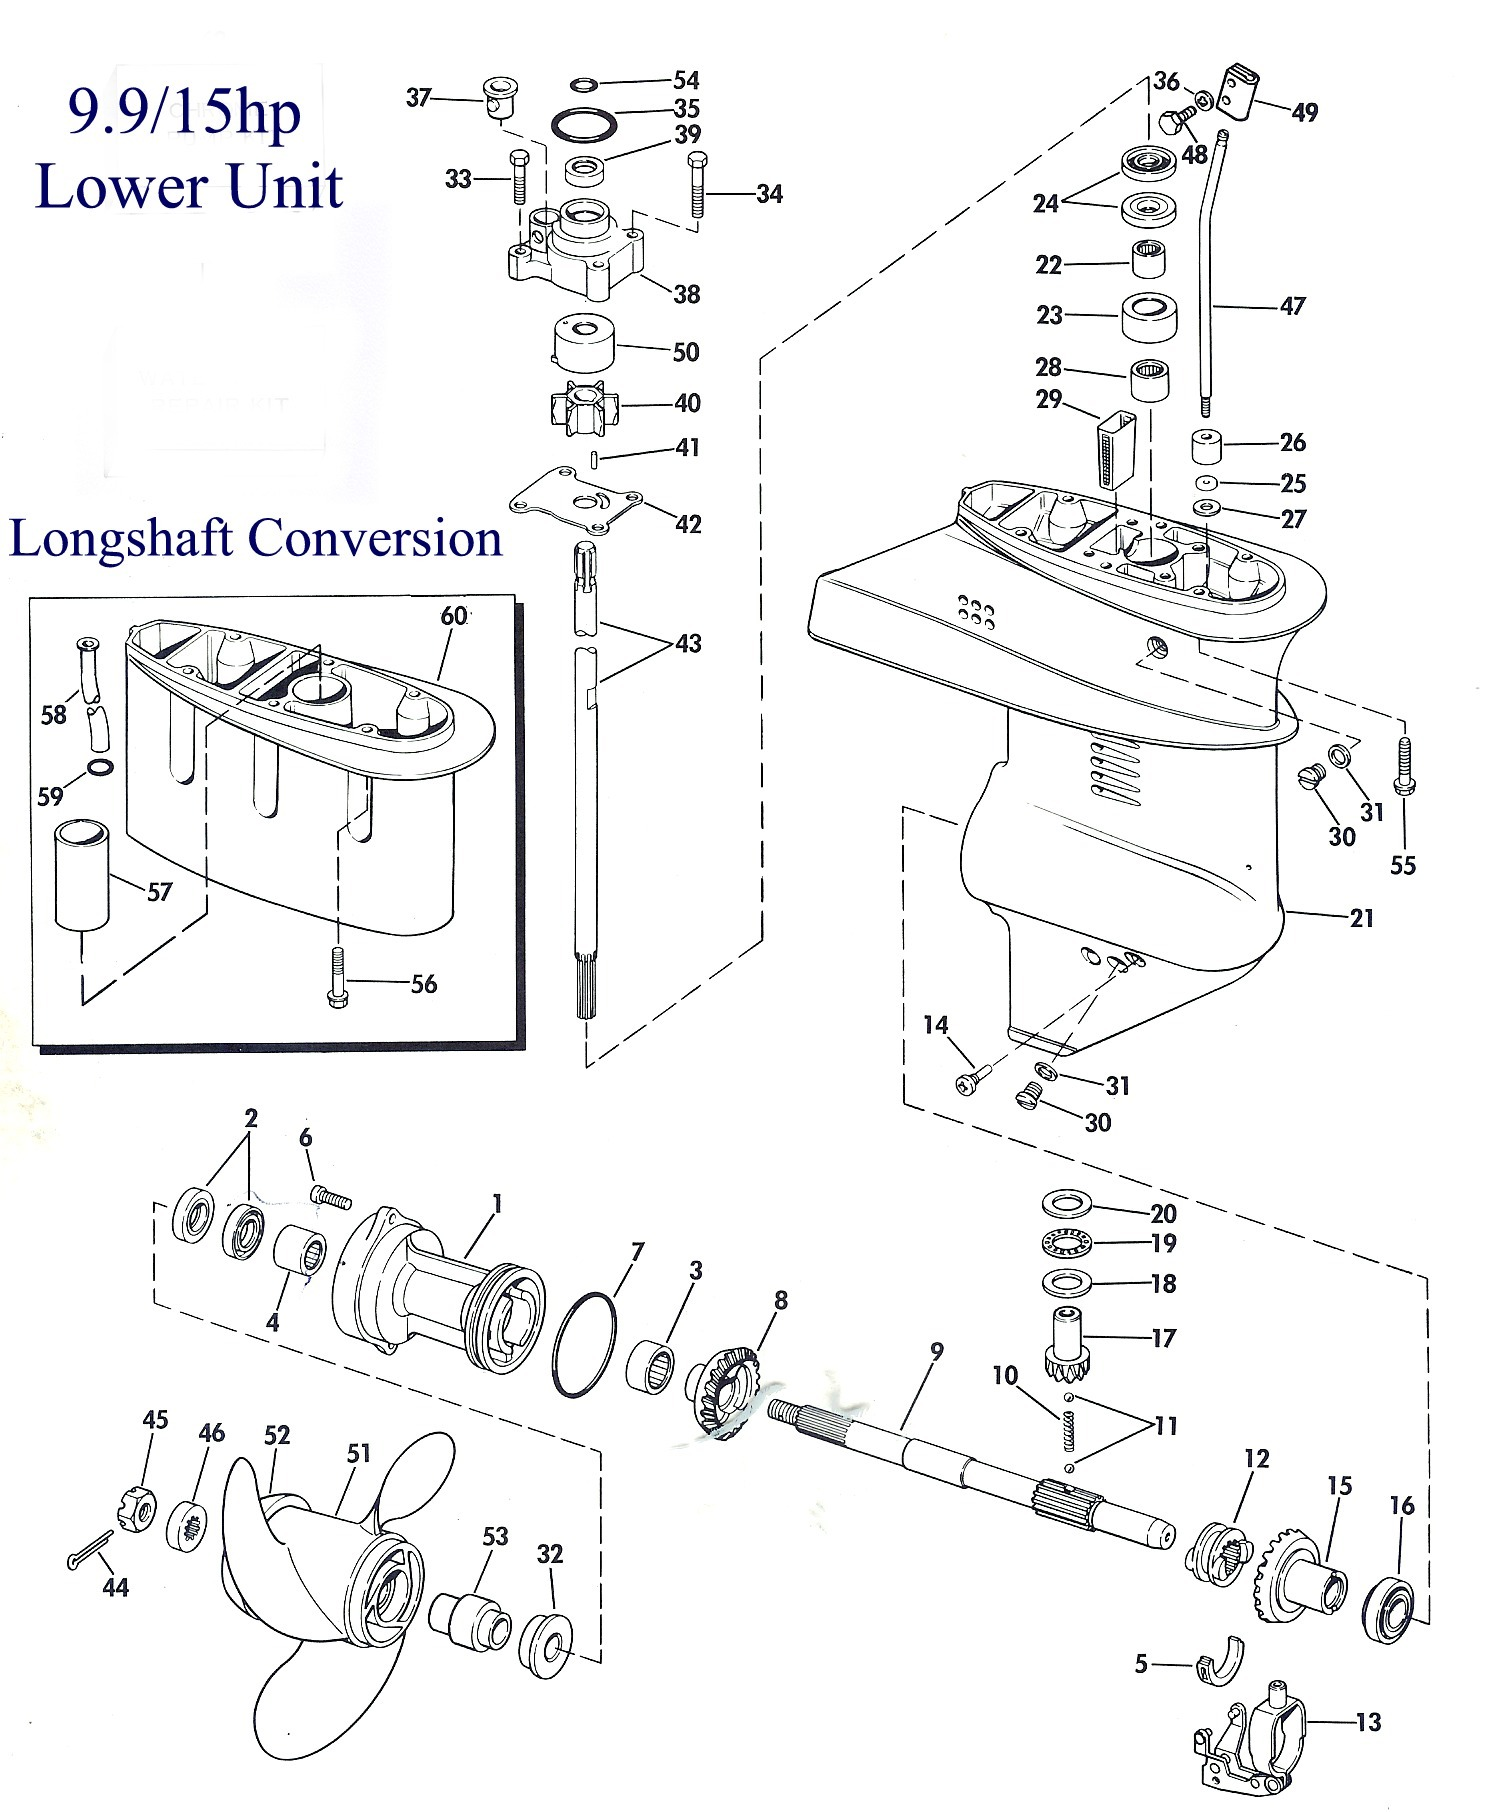 9.9 LU lower unit mercury 9.9 4 stroke wiring diagram at panicattacktreatment.co